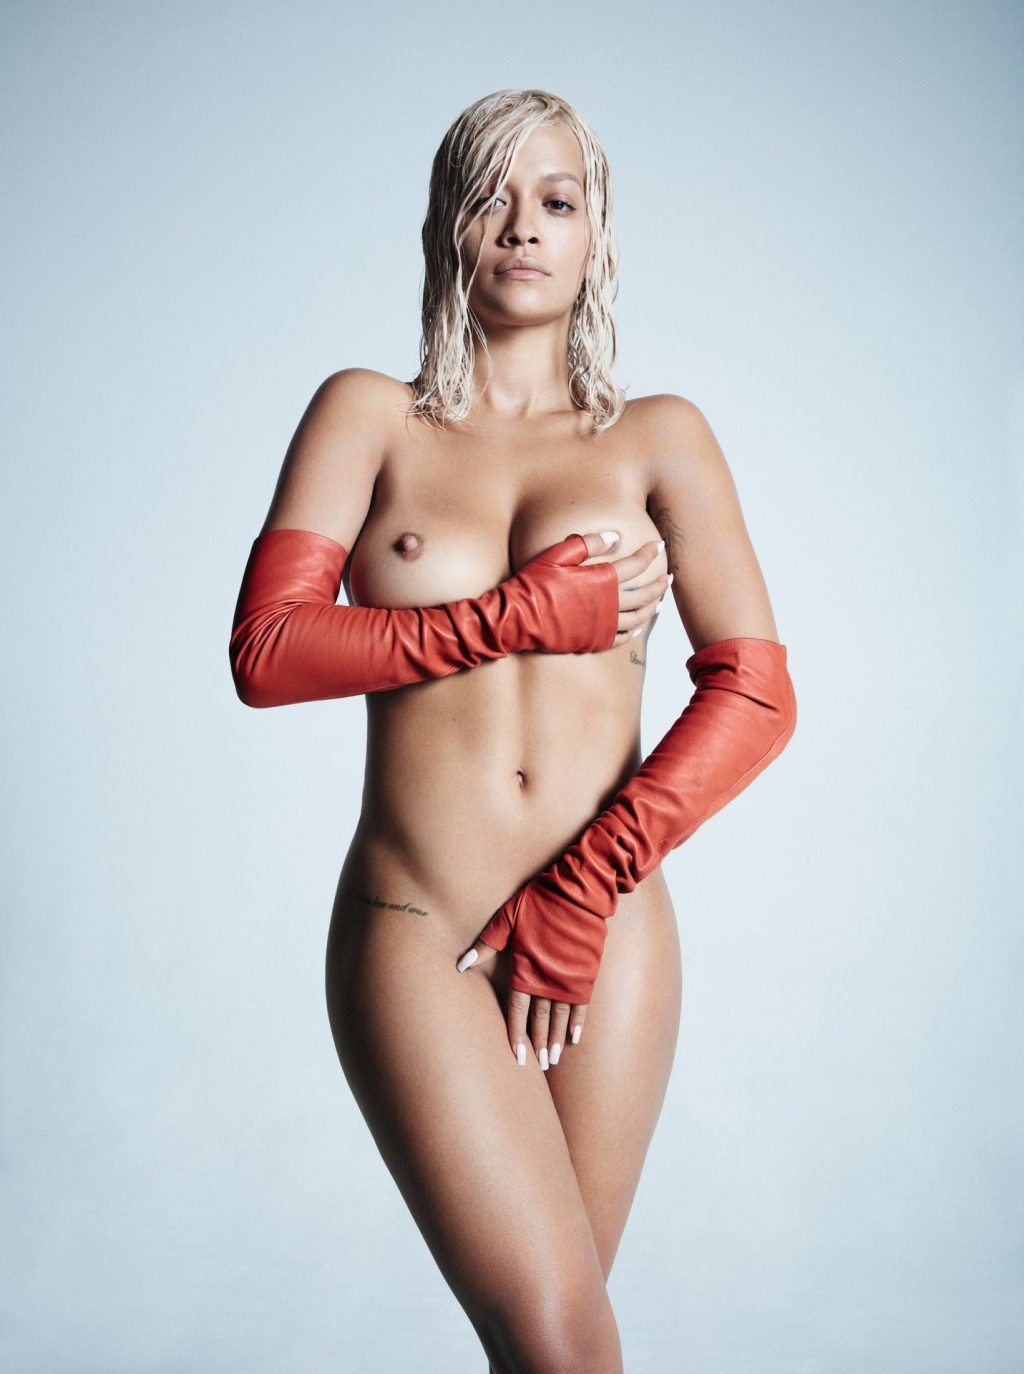 Rita Ora Shows Her Nude Tits for Clash (2 Photos)